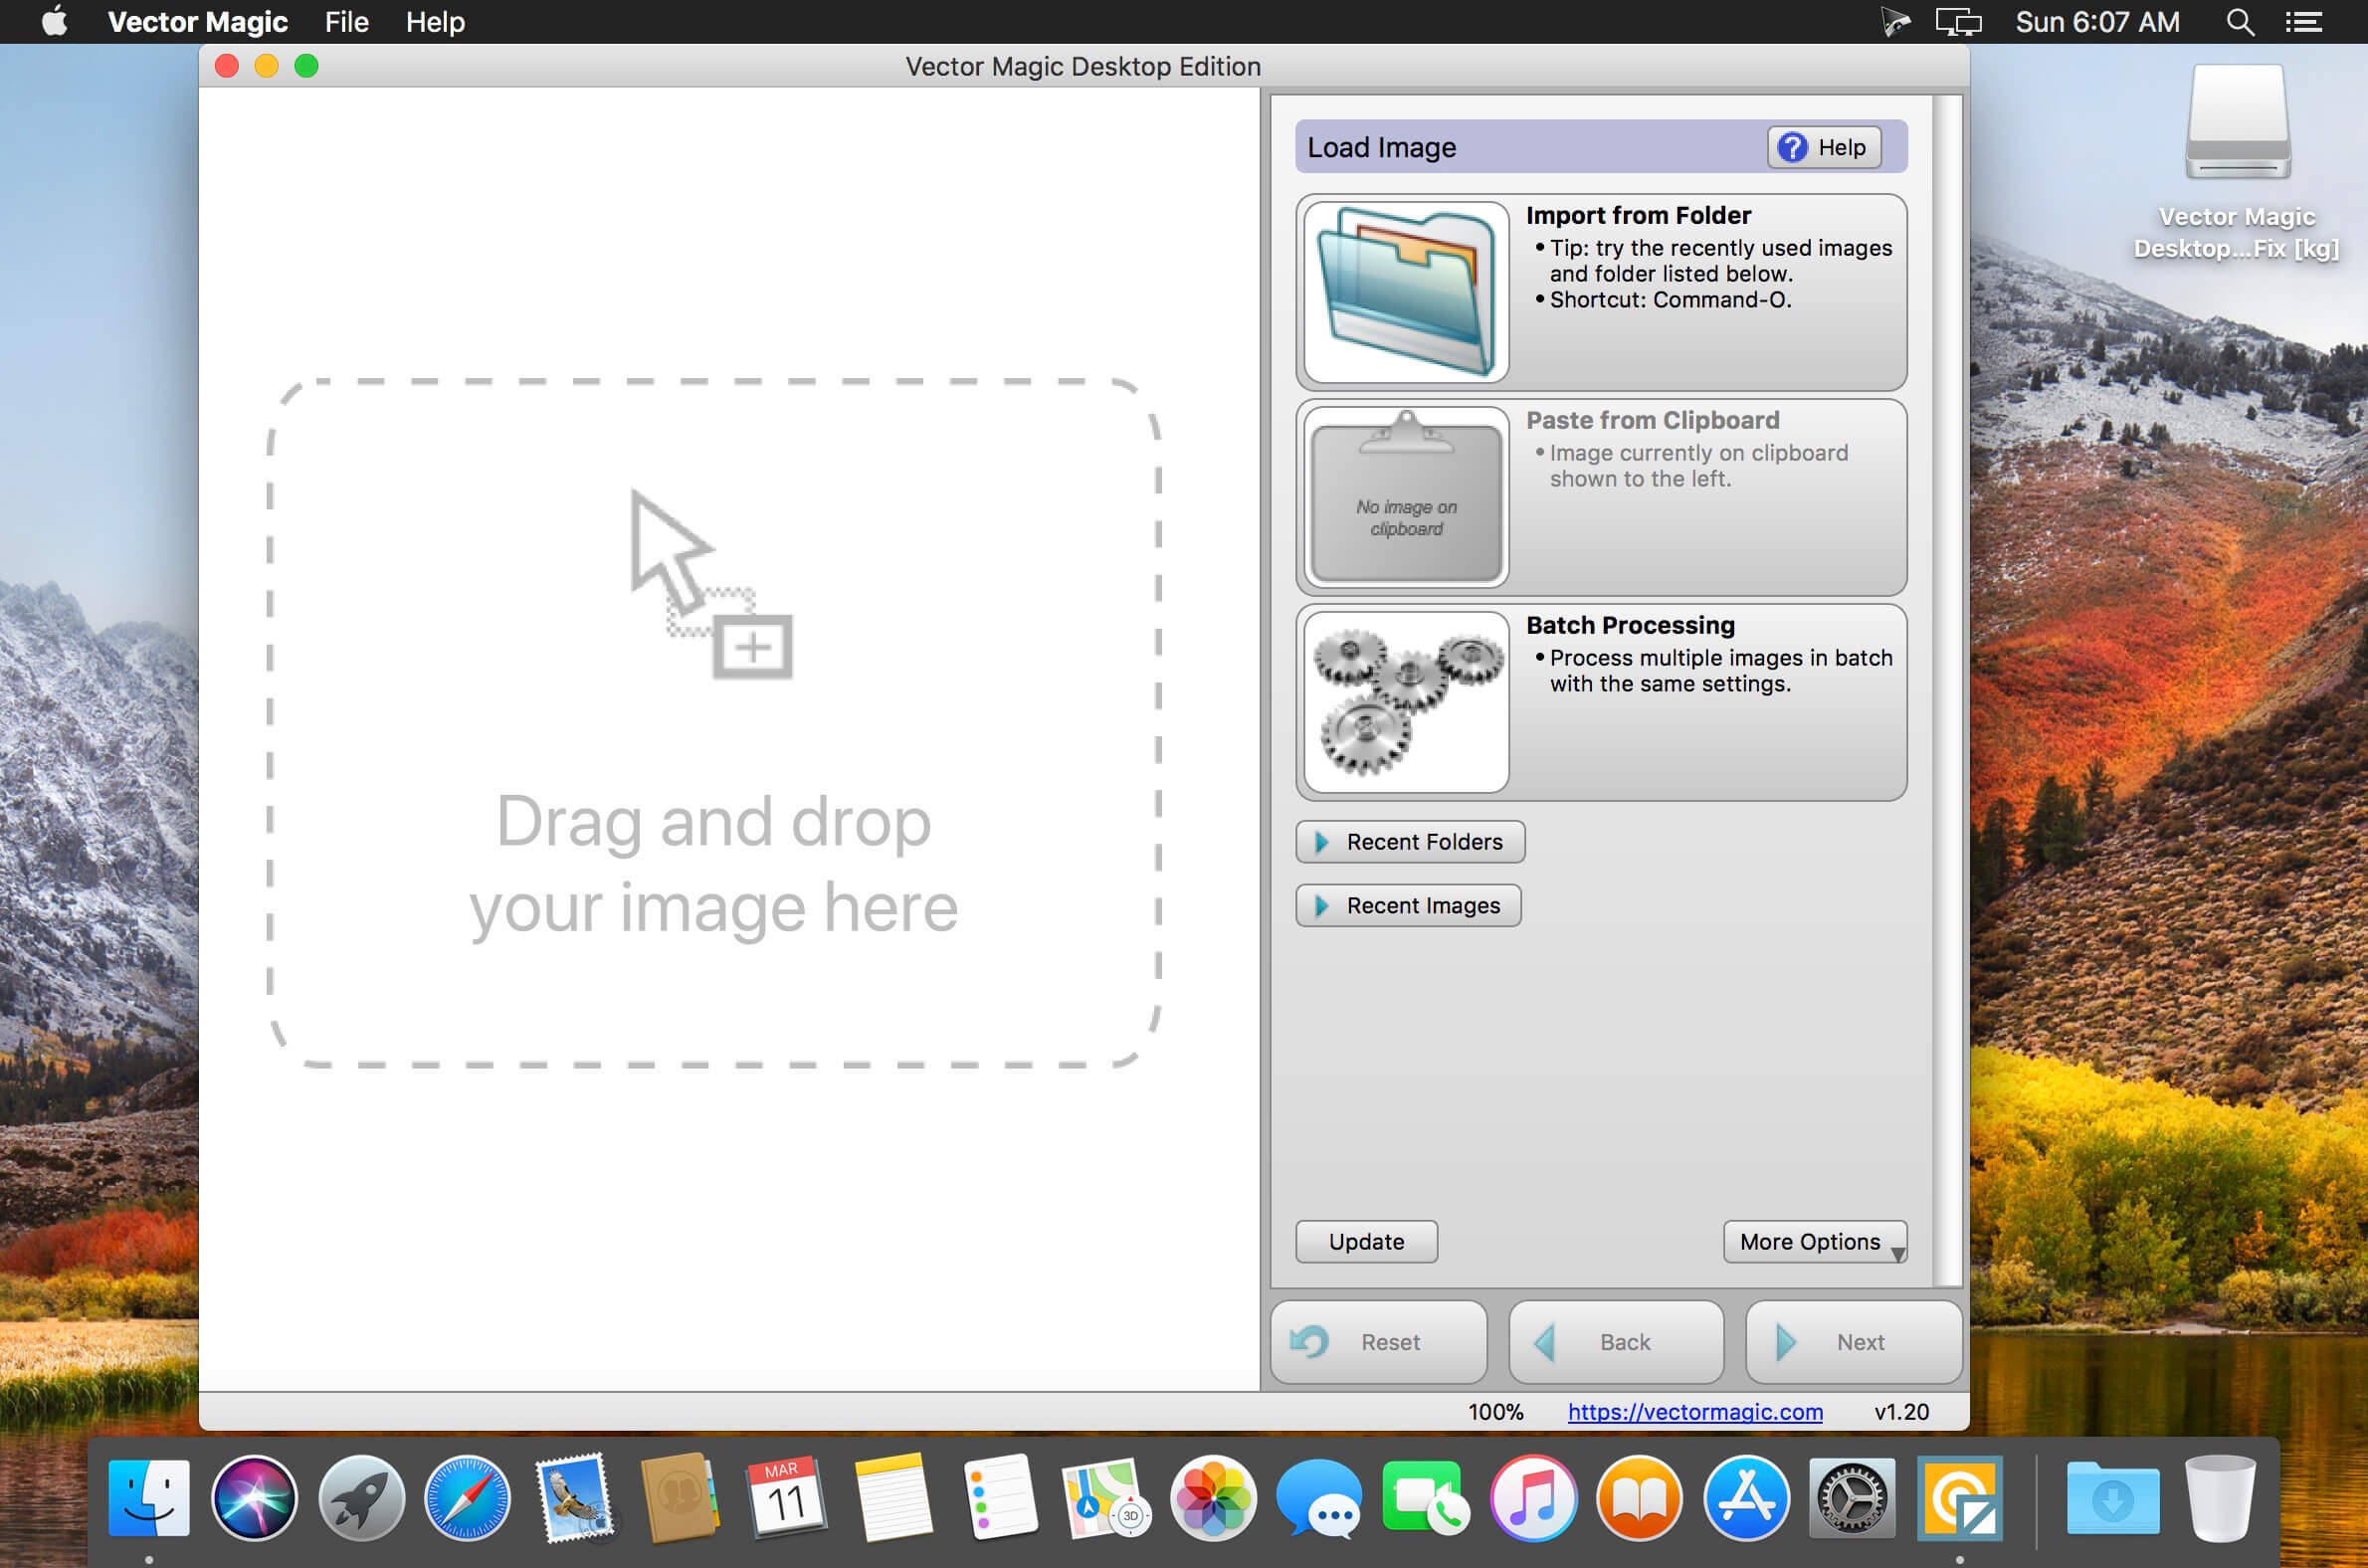 Vector Magic 1.21 Crack with Serial Key Mac Torrent Download